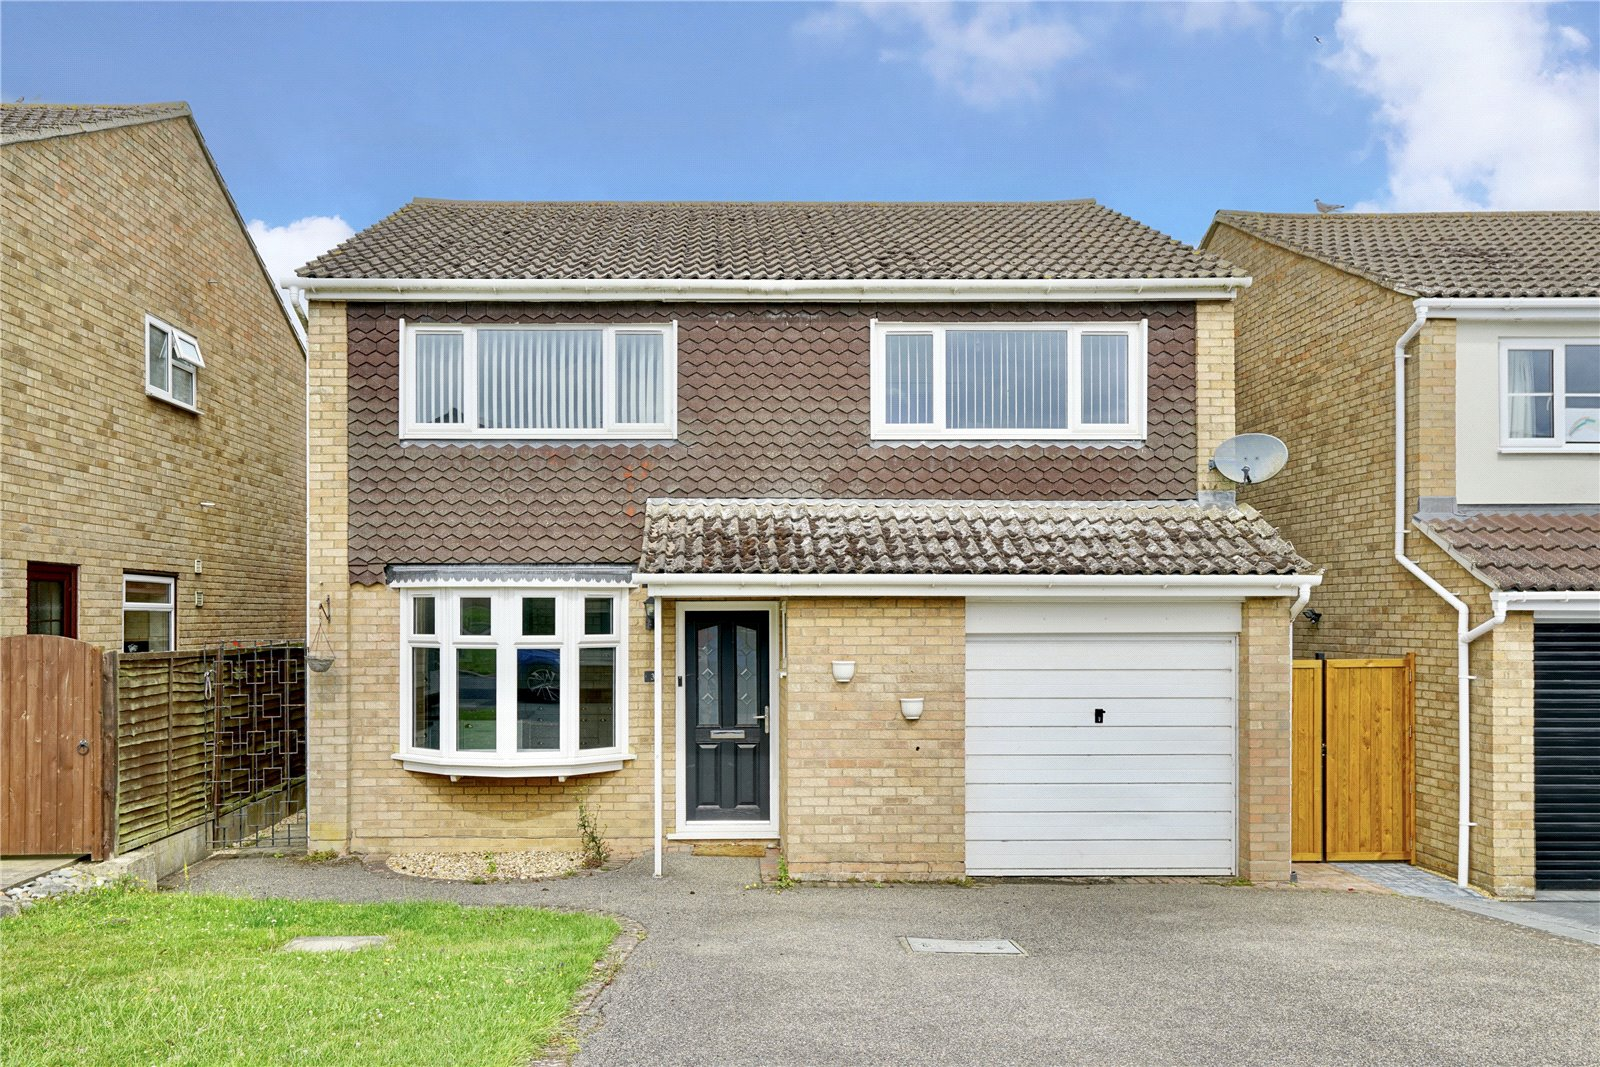 4 bed house for sale in Lakeside Close, Perry - Property Image 1